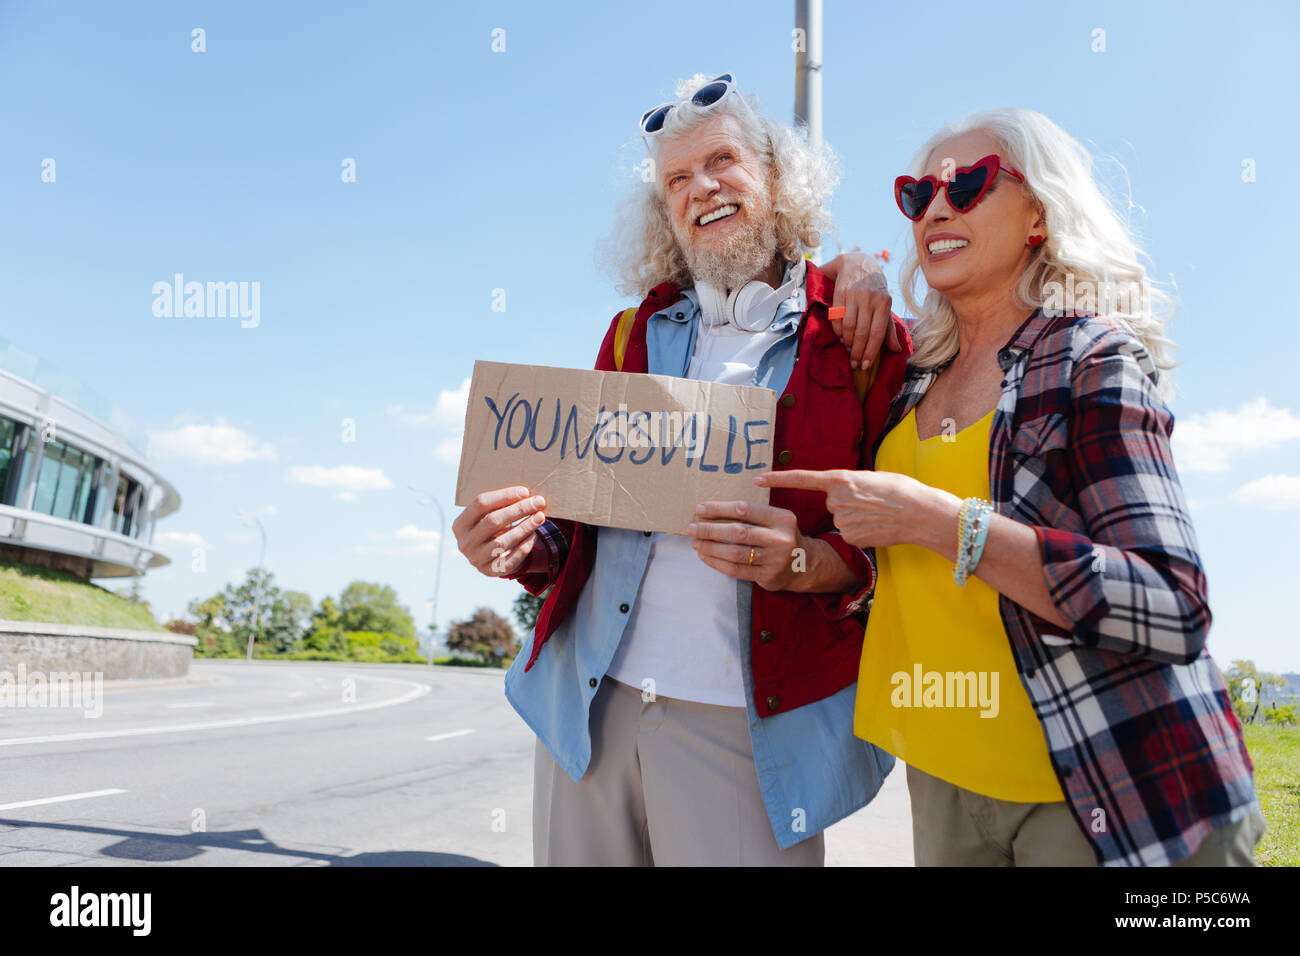 Delighted aged woman pointing at the sign - Stock Image